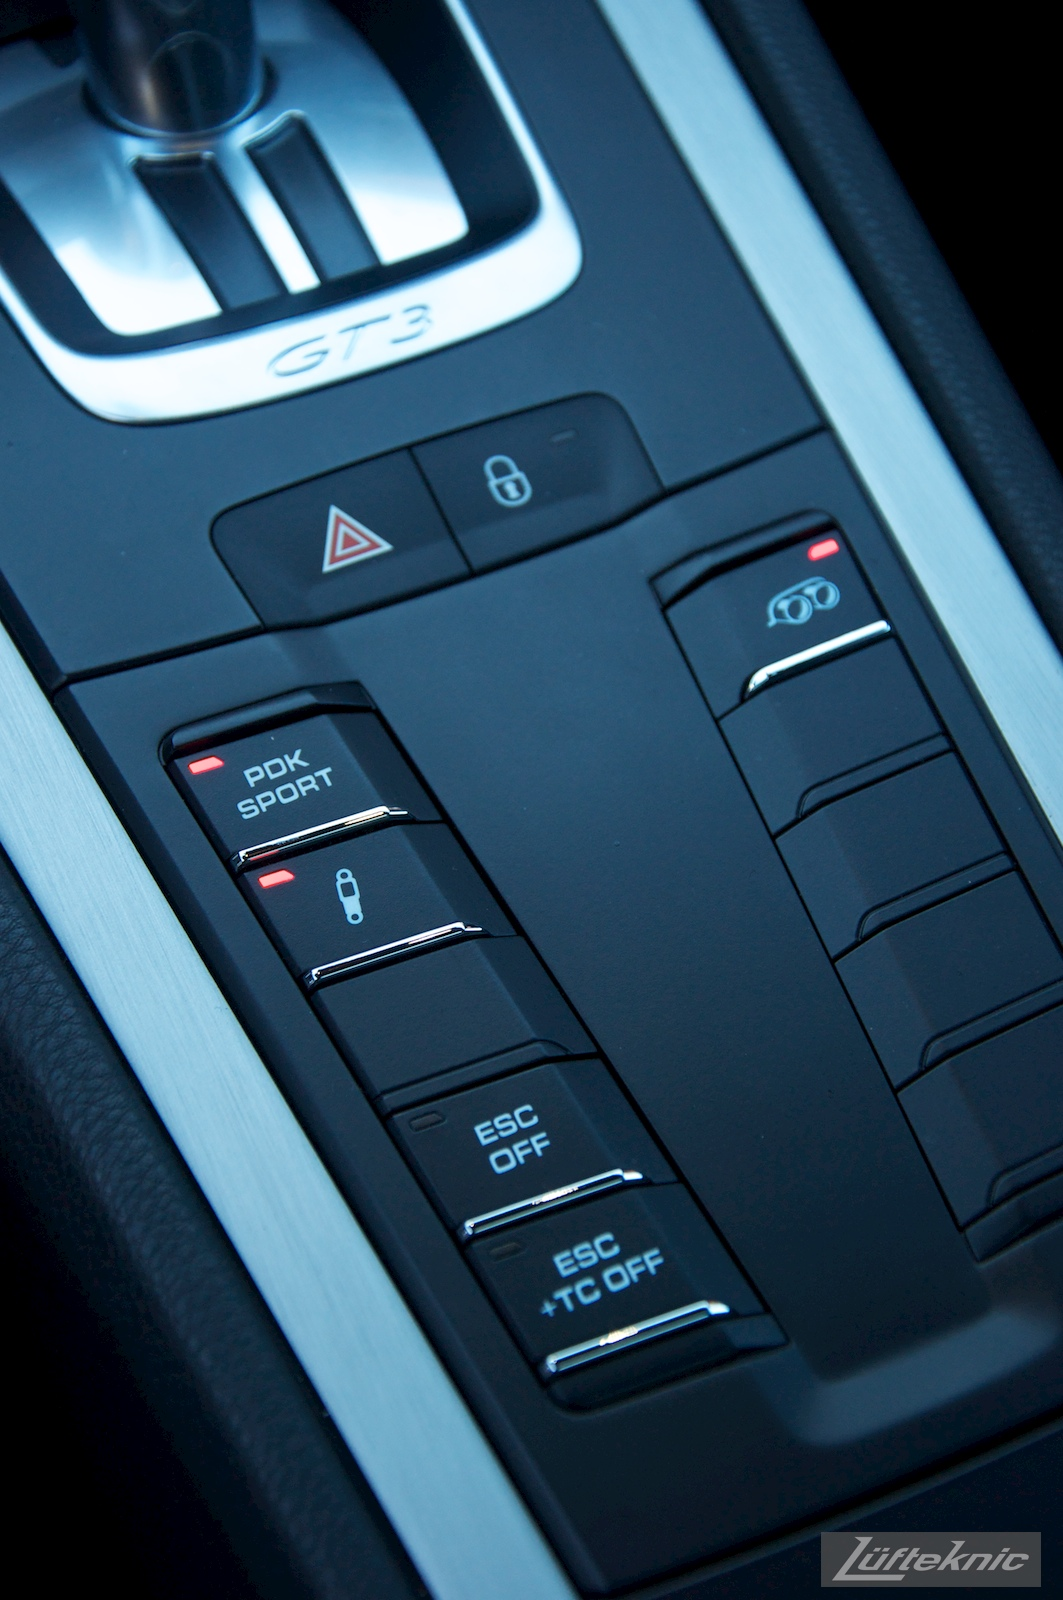 Push buttons for PASM, PSM, ESC and PDK on the Lüfteknic Porsche 991 GT3